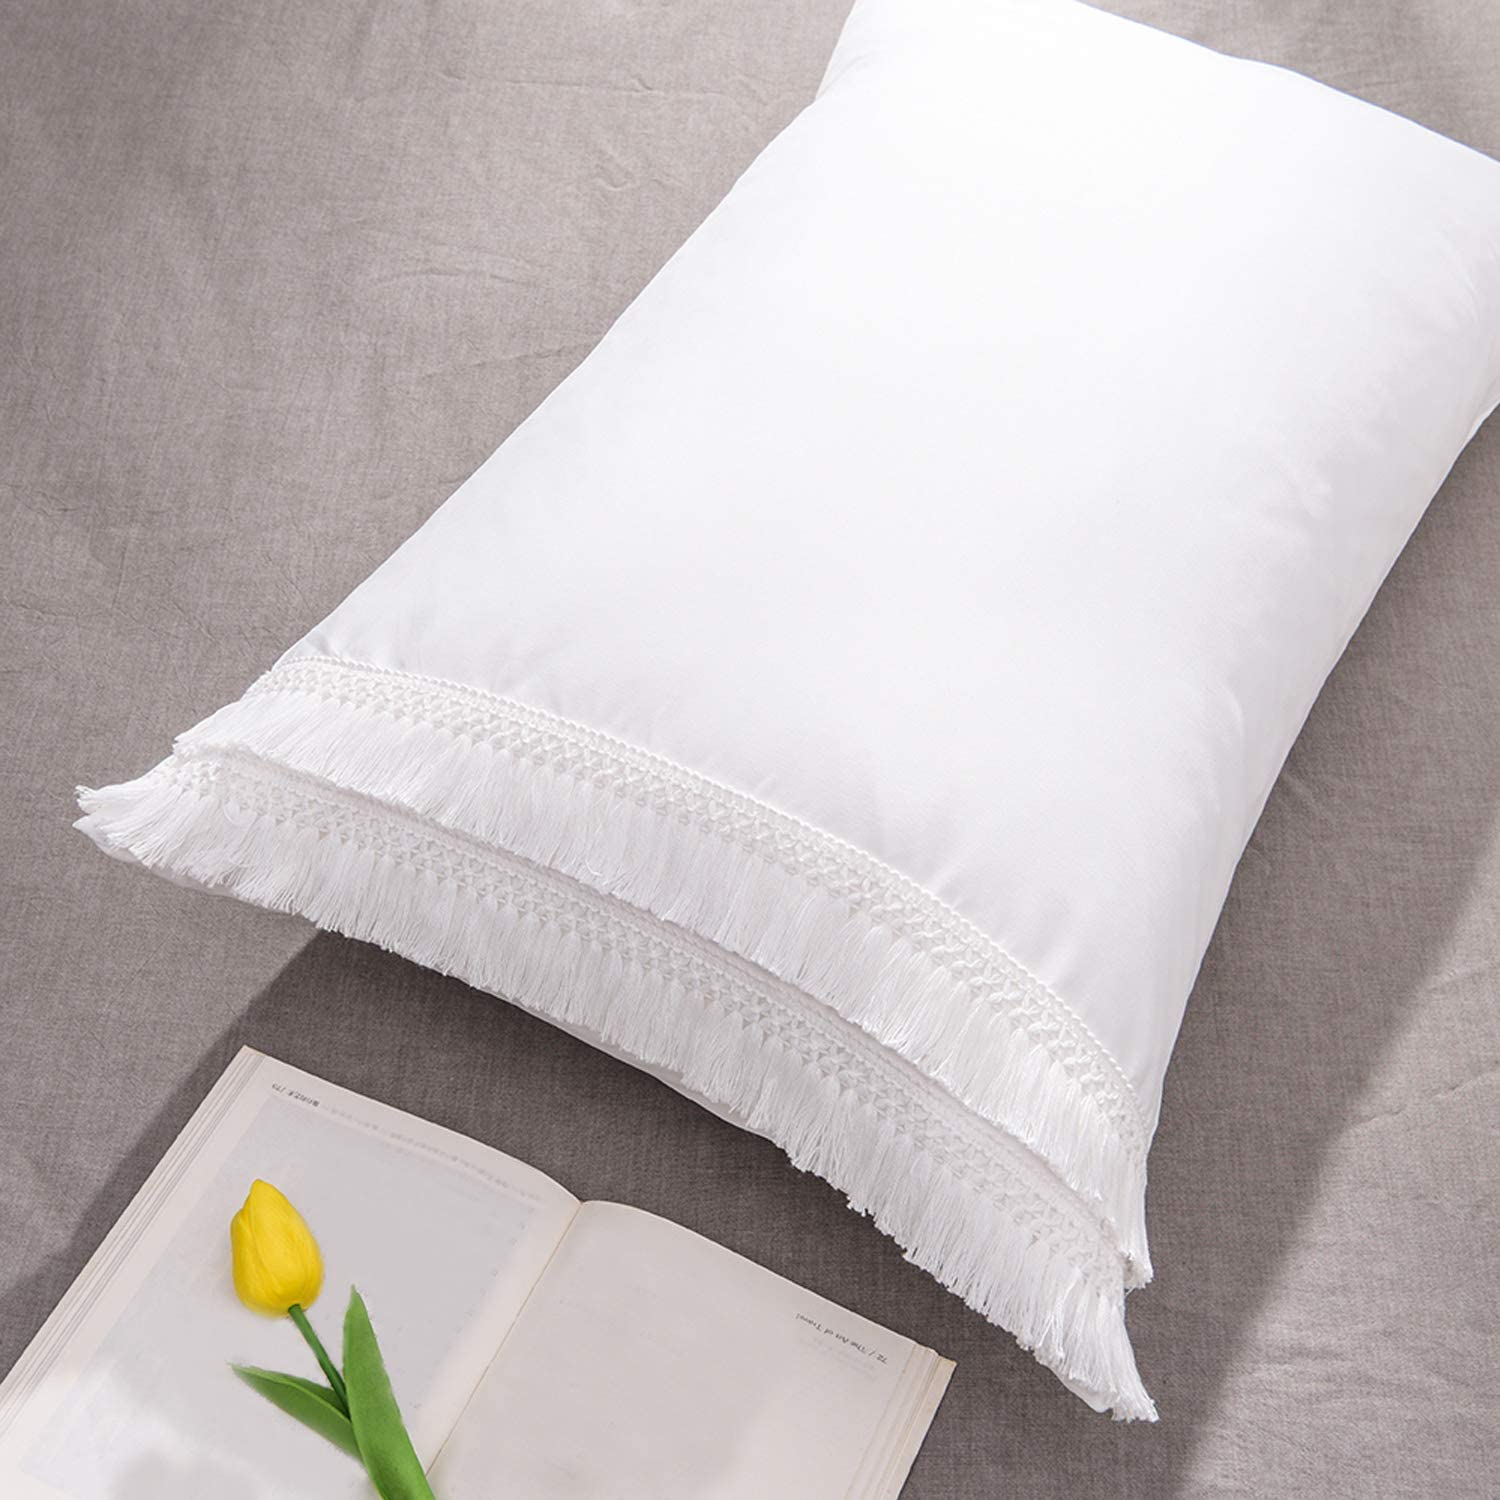 CAWANFLY Tassel Pillow Sham Set of 2 Decorative White Pillowcases Standard Size Bedding Pillow Covers with Envelope Closure (20x26inches)